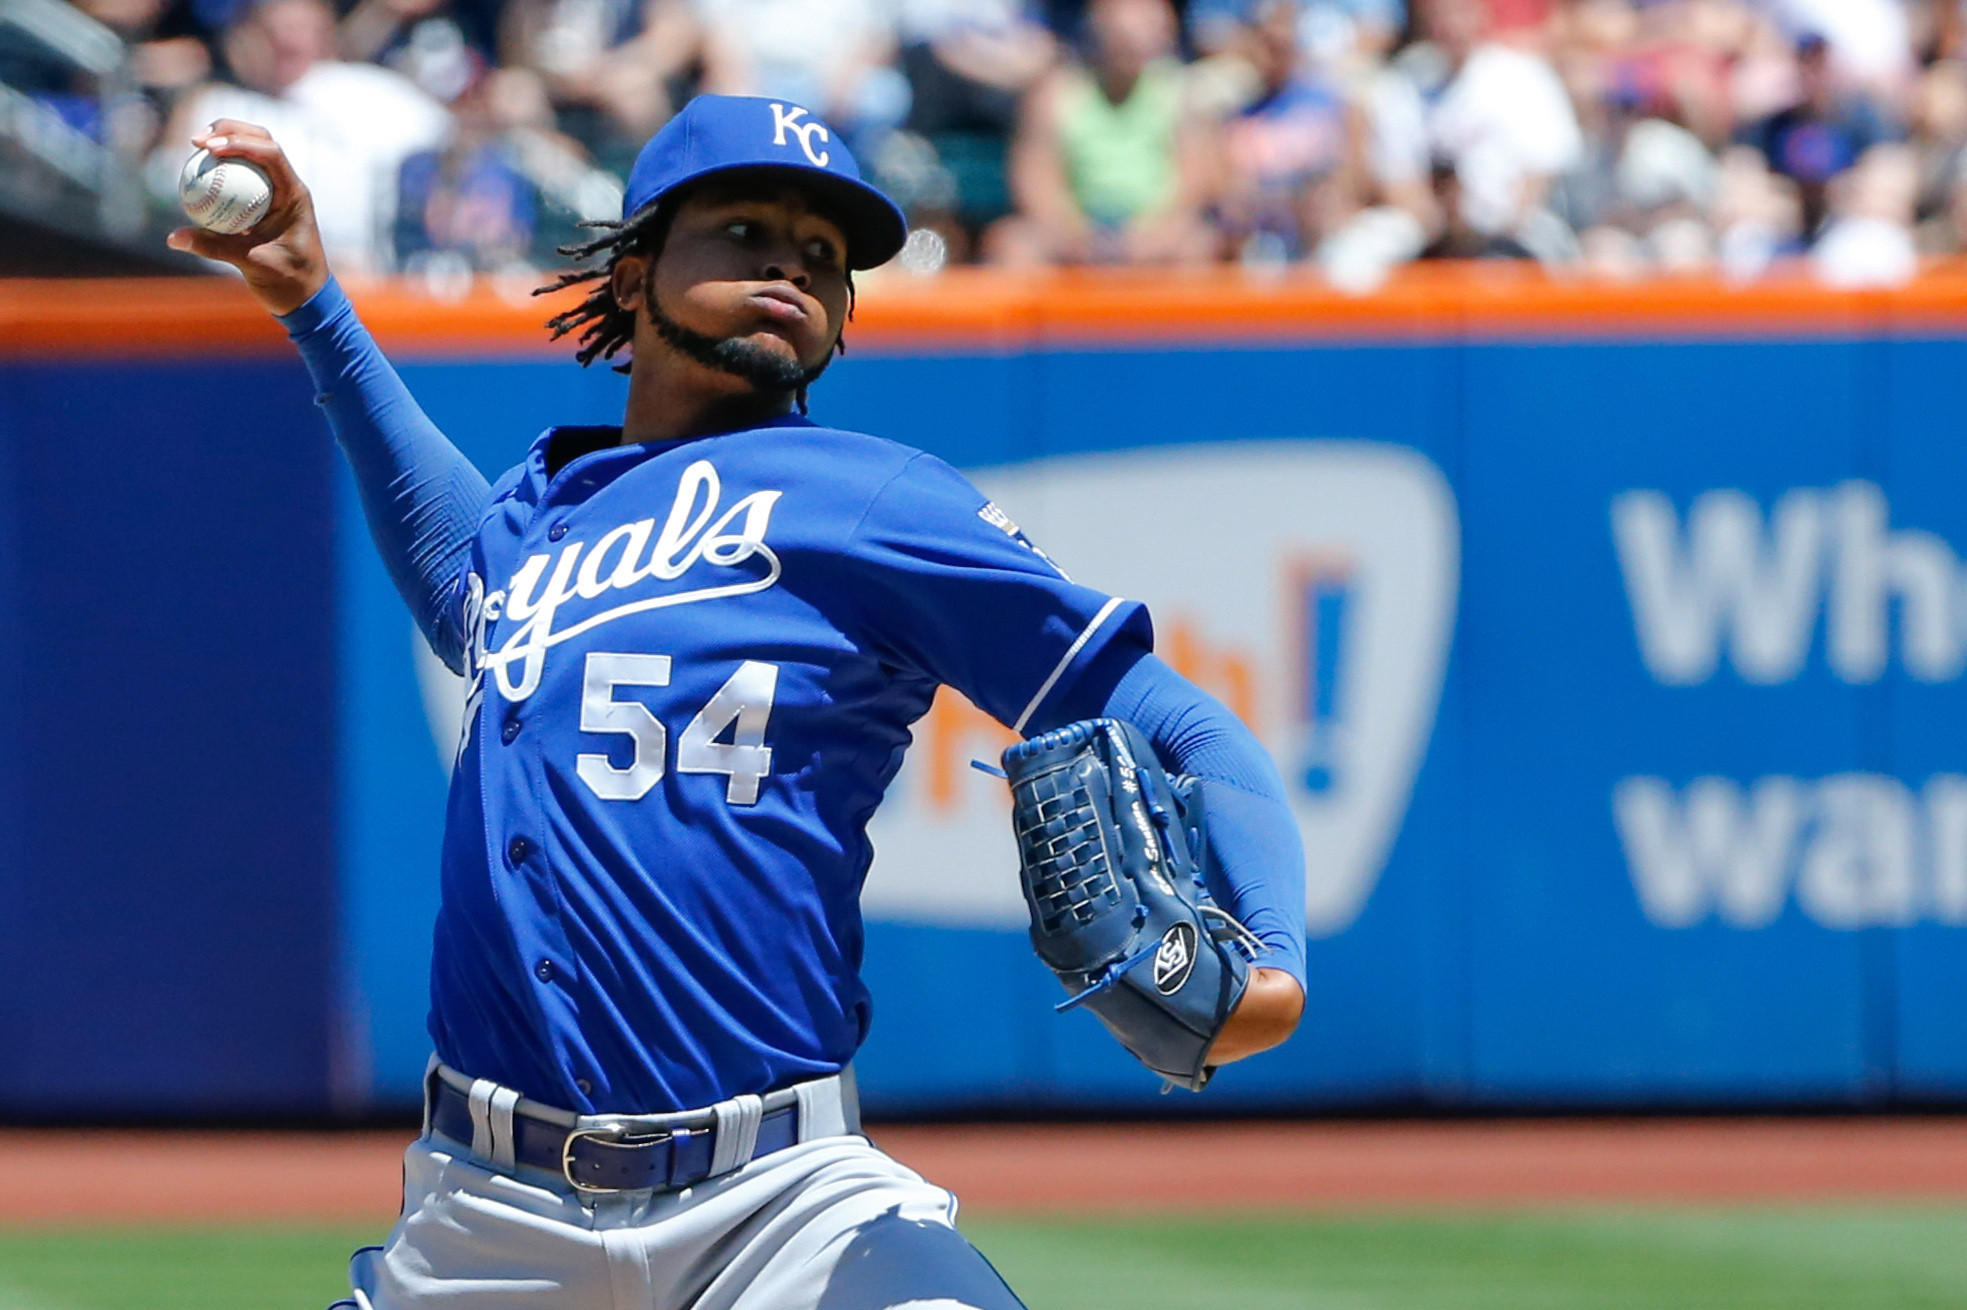 Ervin Santana pitched for the Kansas City Royals last season.